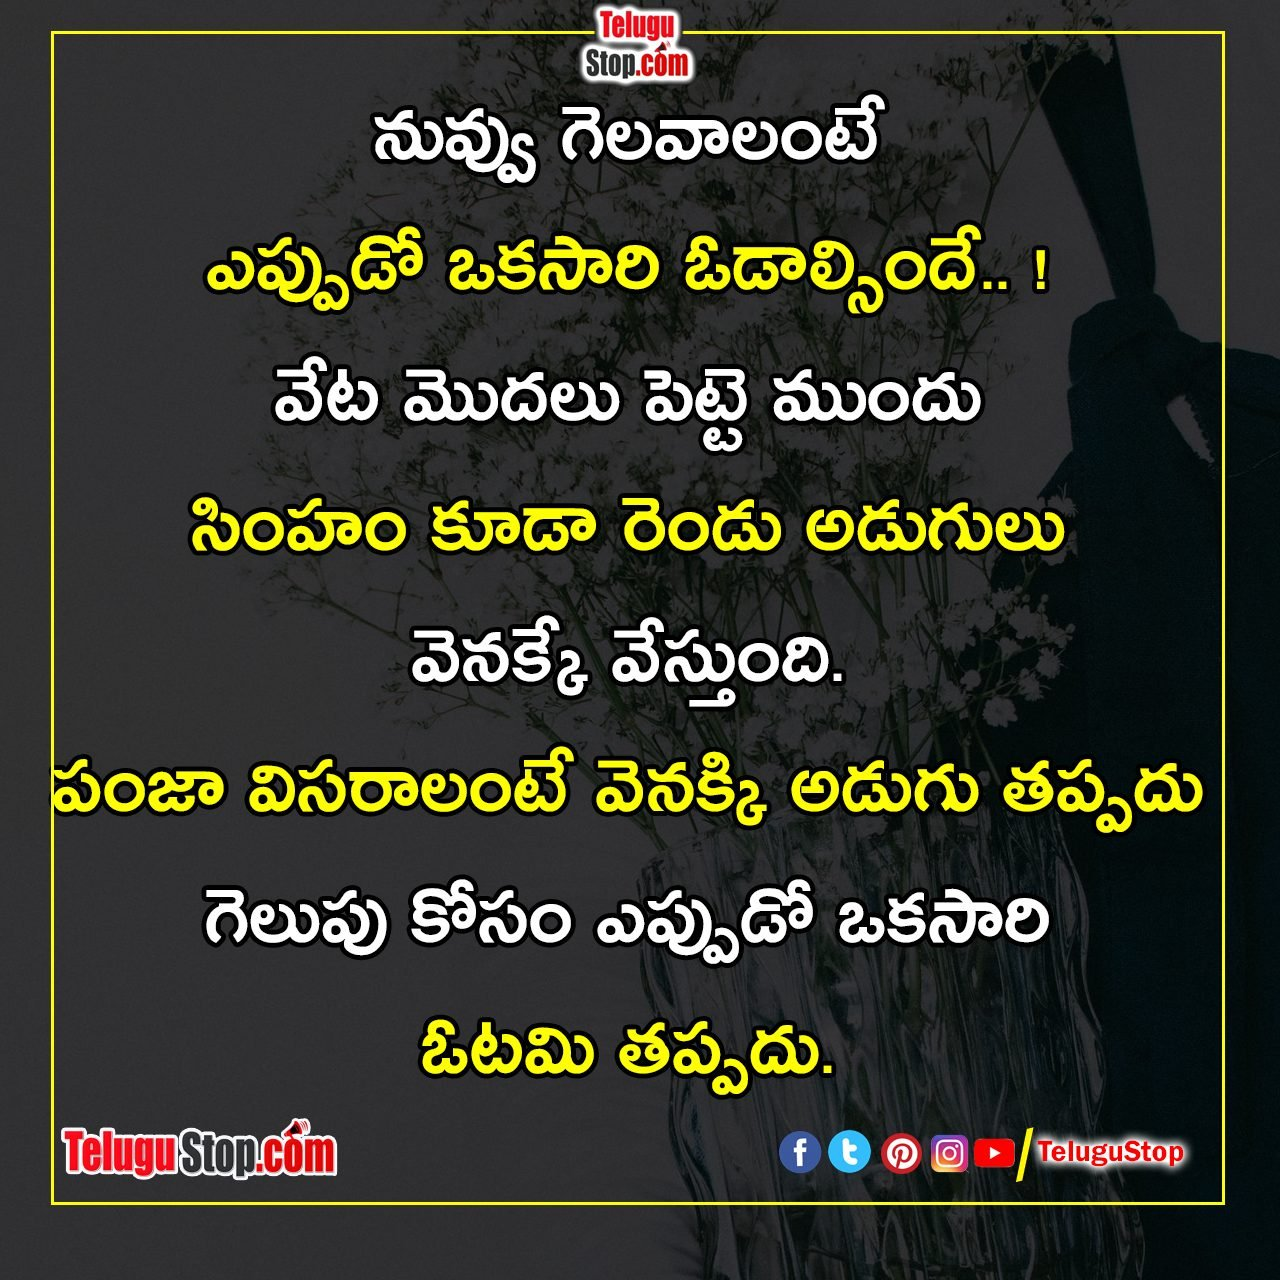 Telugu Defeat Is A Must For Victory Inspirational Quotes, Happy Life Related Inspiuriational Quotes, Ridiculous Related Inspiration Questions, Want Lock Down Say Yes Or No Inspiriational Quotes-Telugu Daily Quotes - Inspirational/Motivational/Love/Friendship/Good Morning Quote